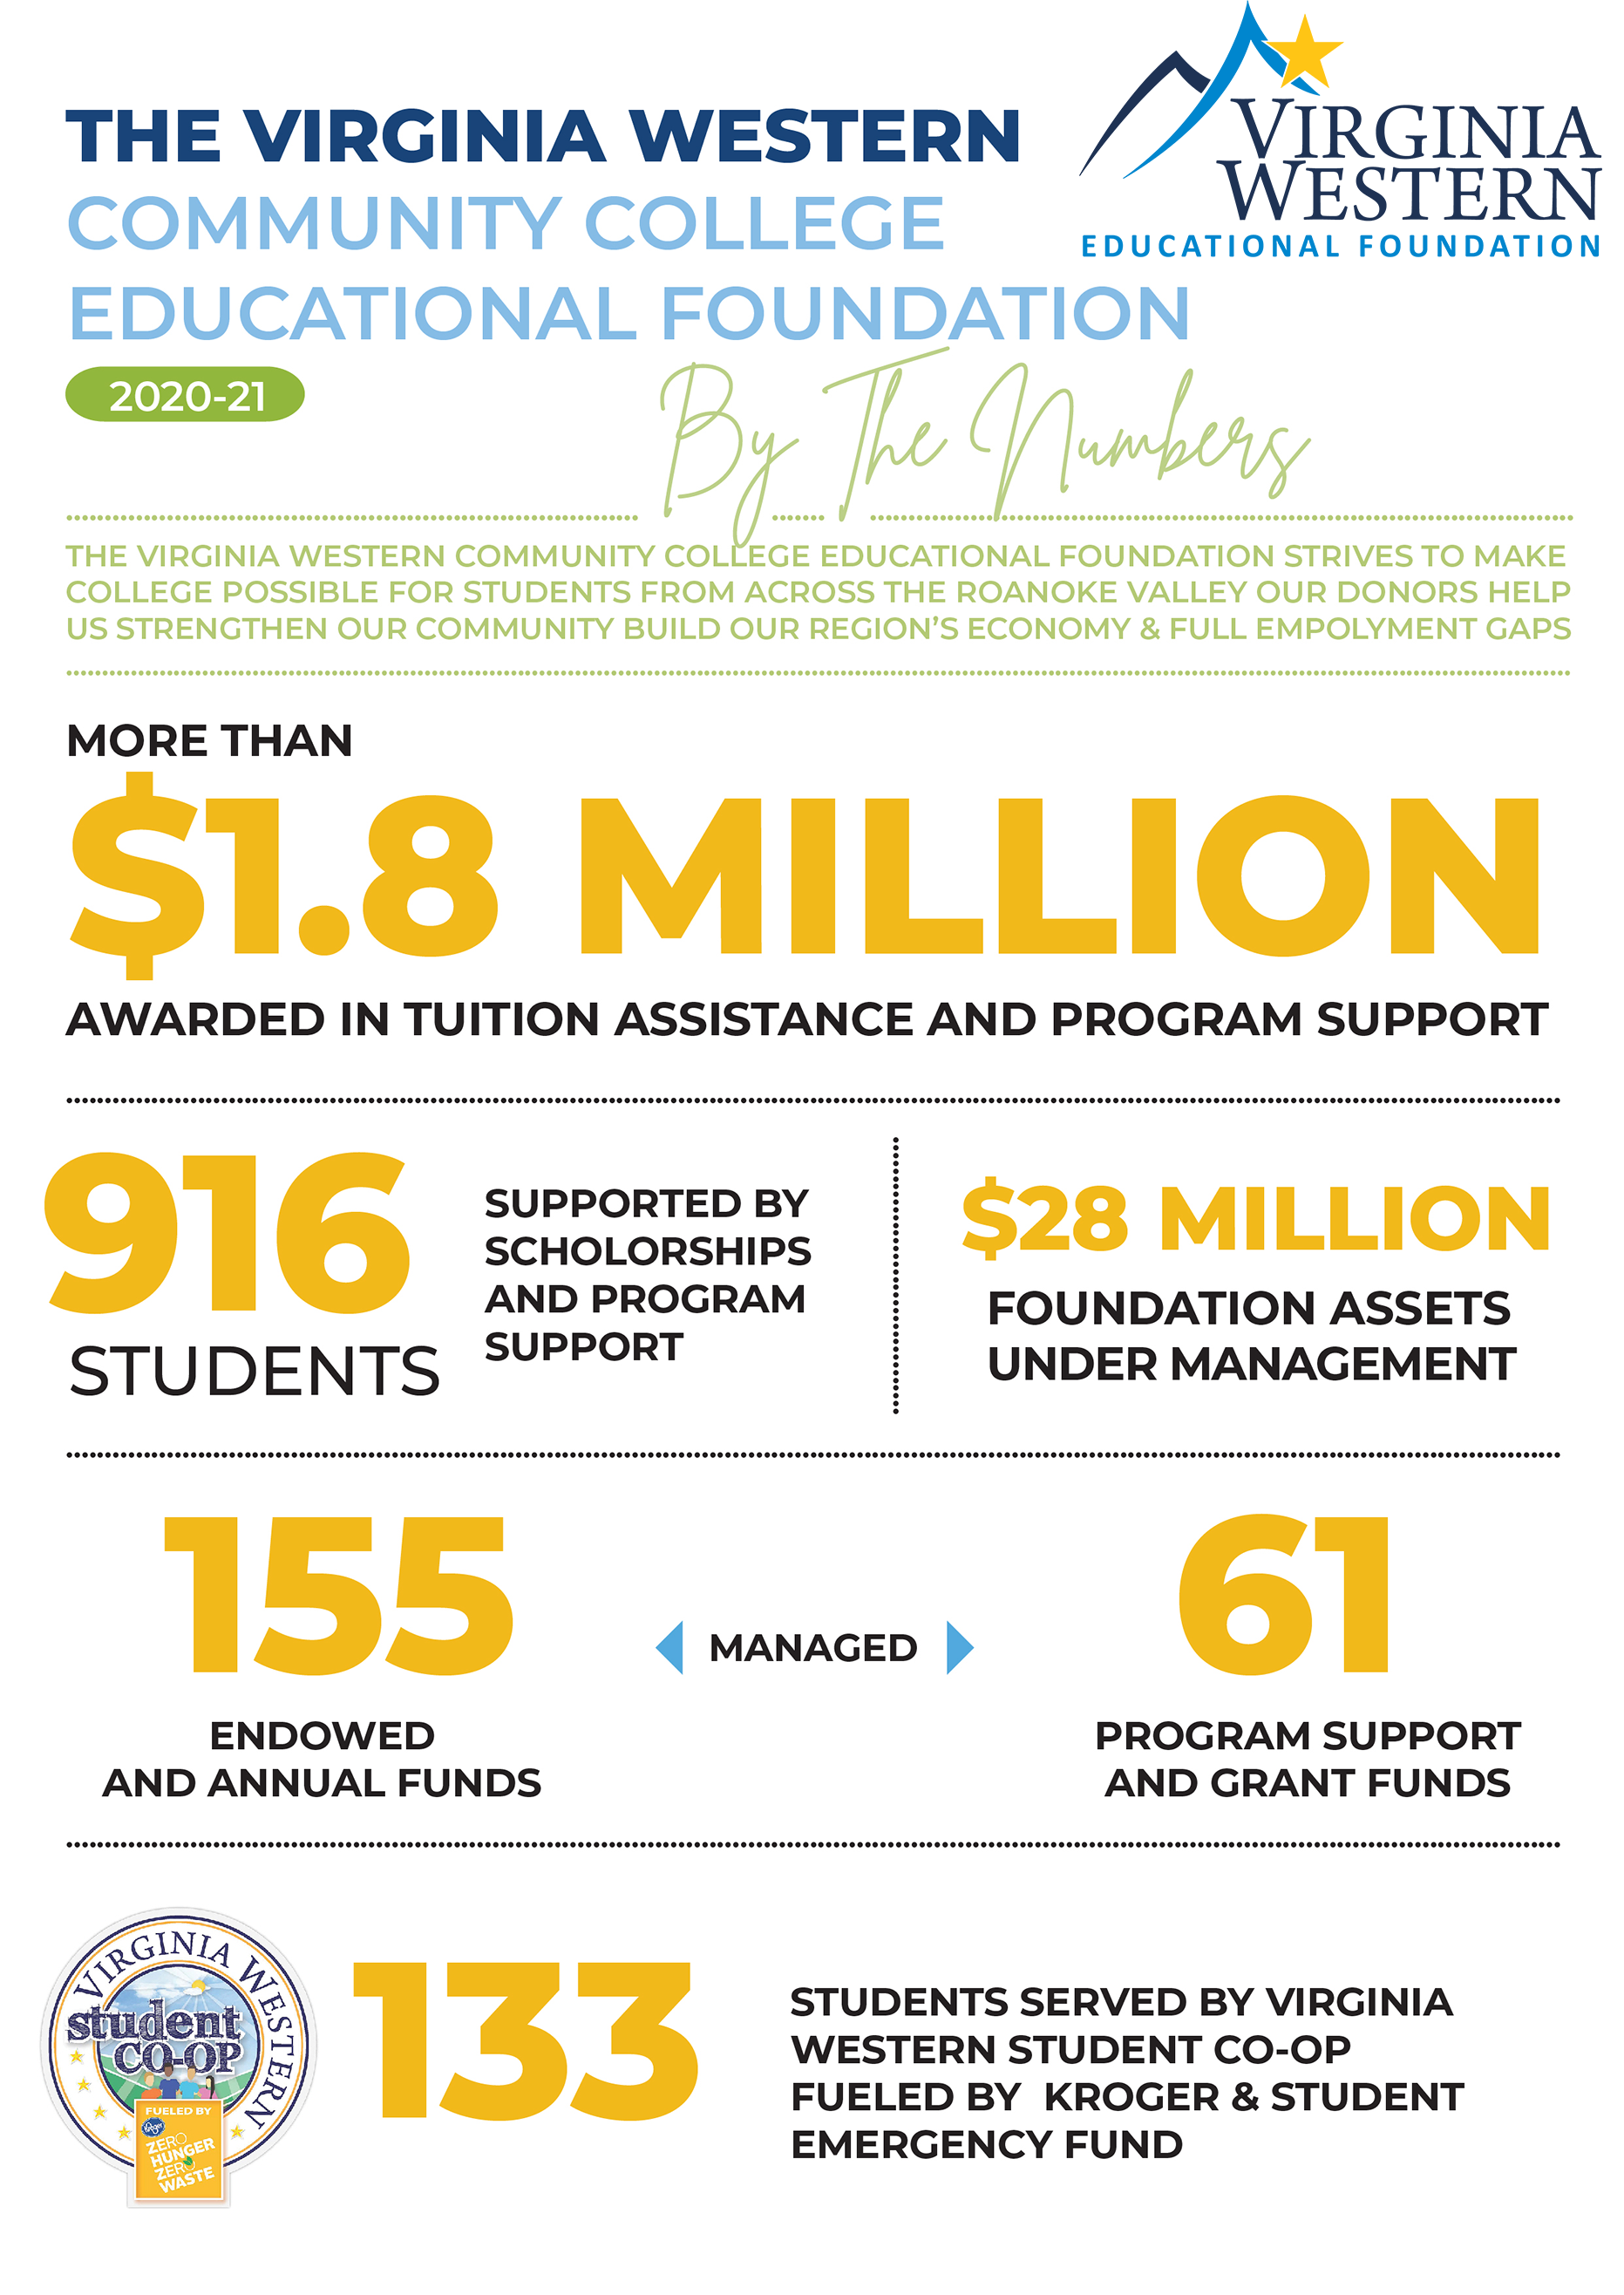 The Educational Foundation: By the Numbers